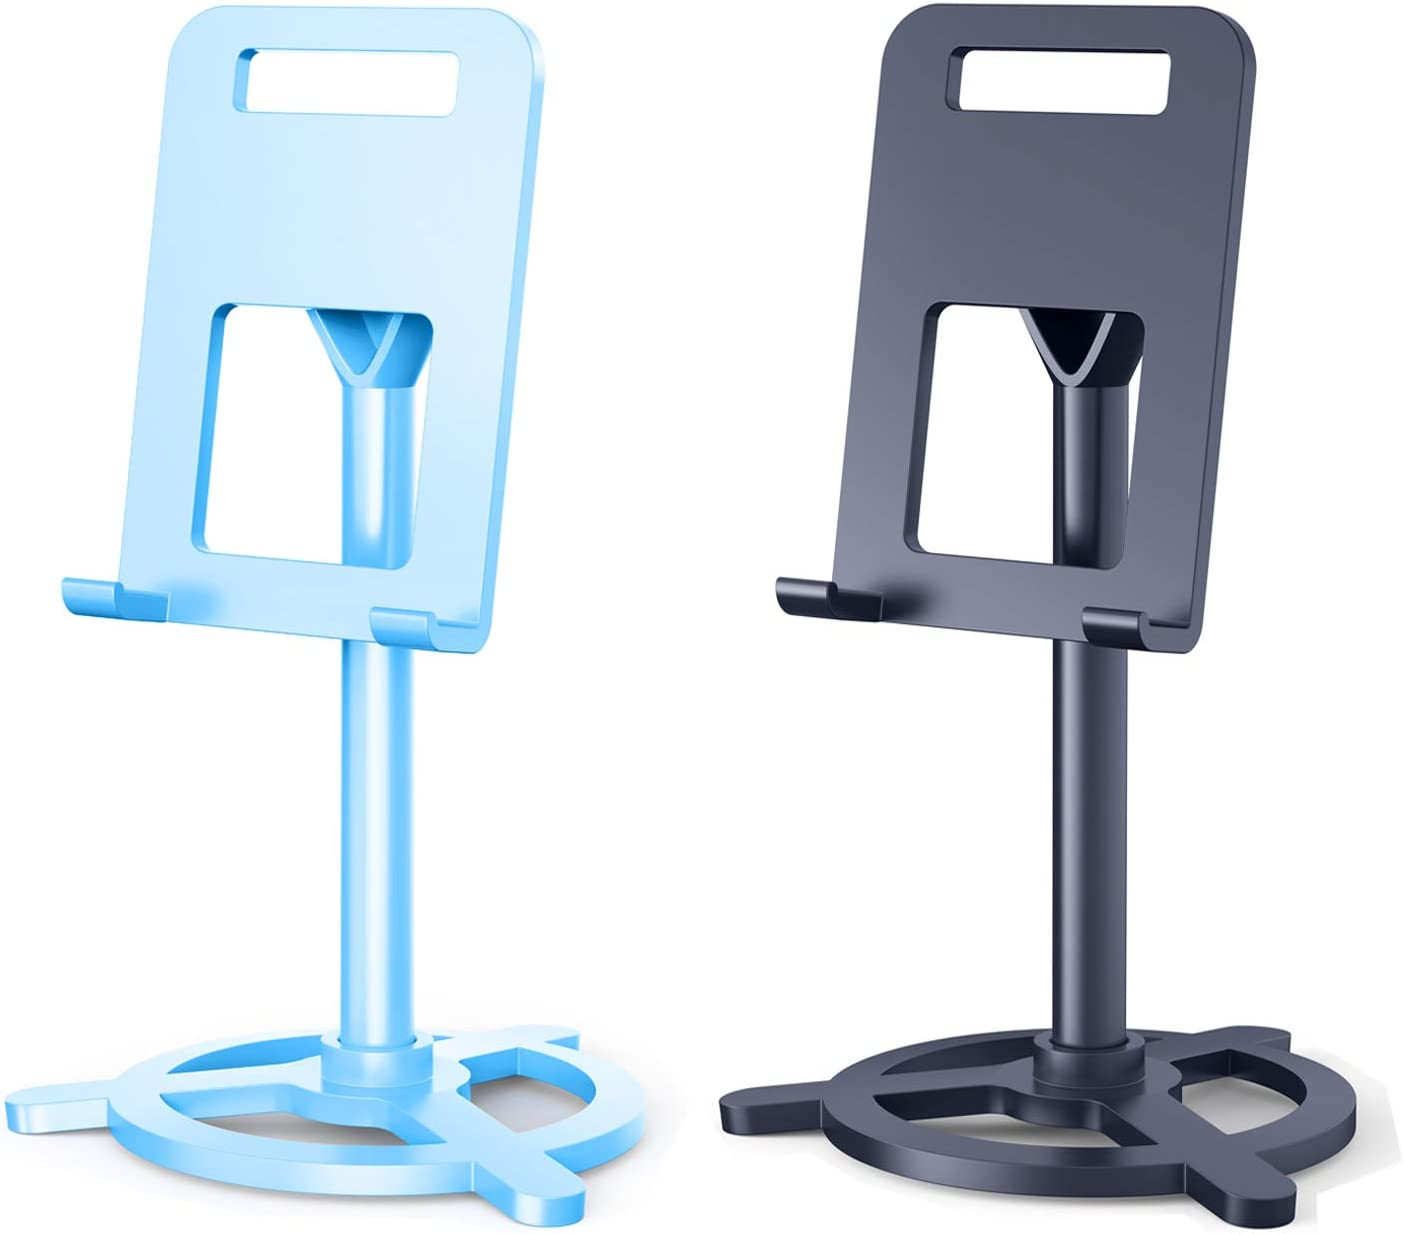 2 Pack Cell Phone Stand,Angle Adjustable Desk Cell Phone Holder,Stand is Suitable for Home/Office Desktop,Compatible with Mobile Phones,iPhone,iPad,Tablet(4-10in)